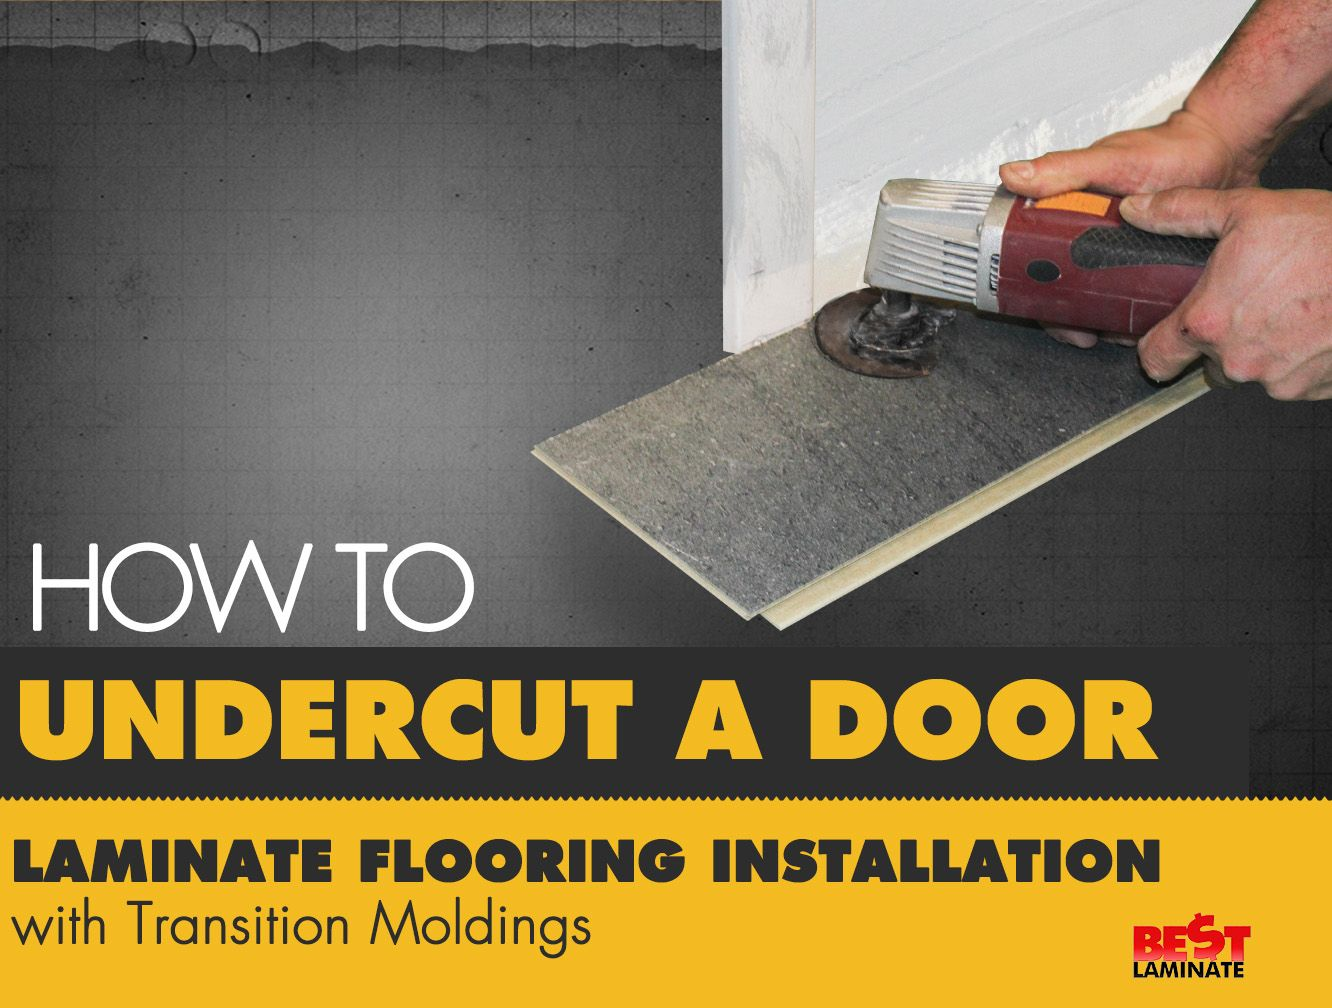 We walk you through a stepbystep guide on how to undercut a door